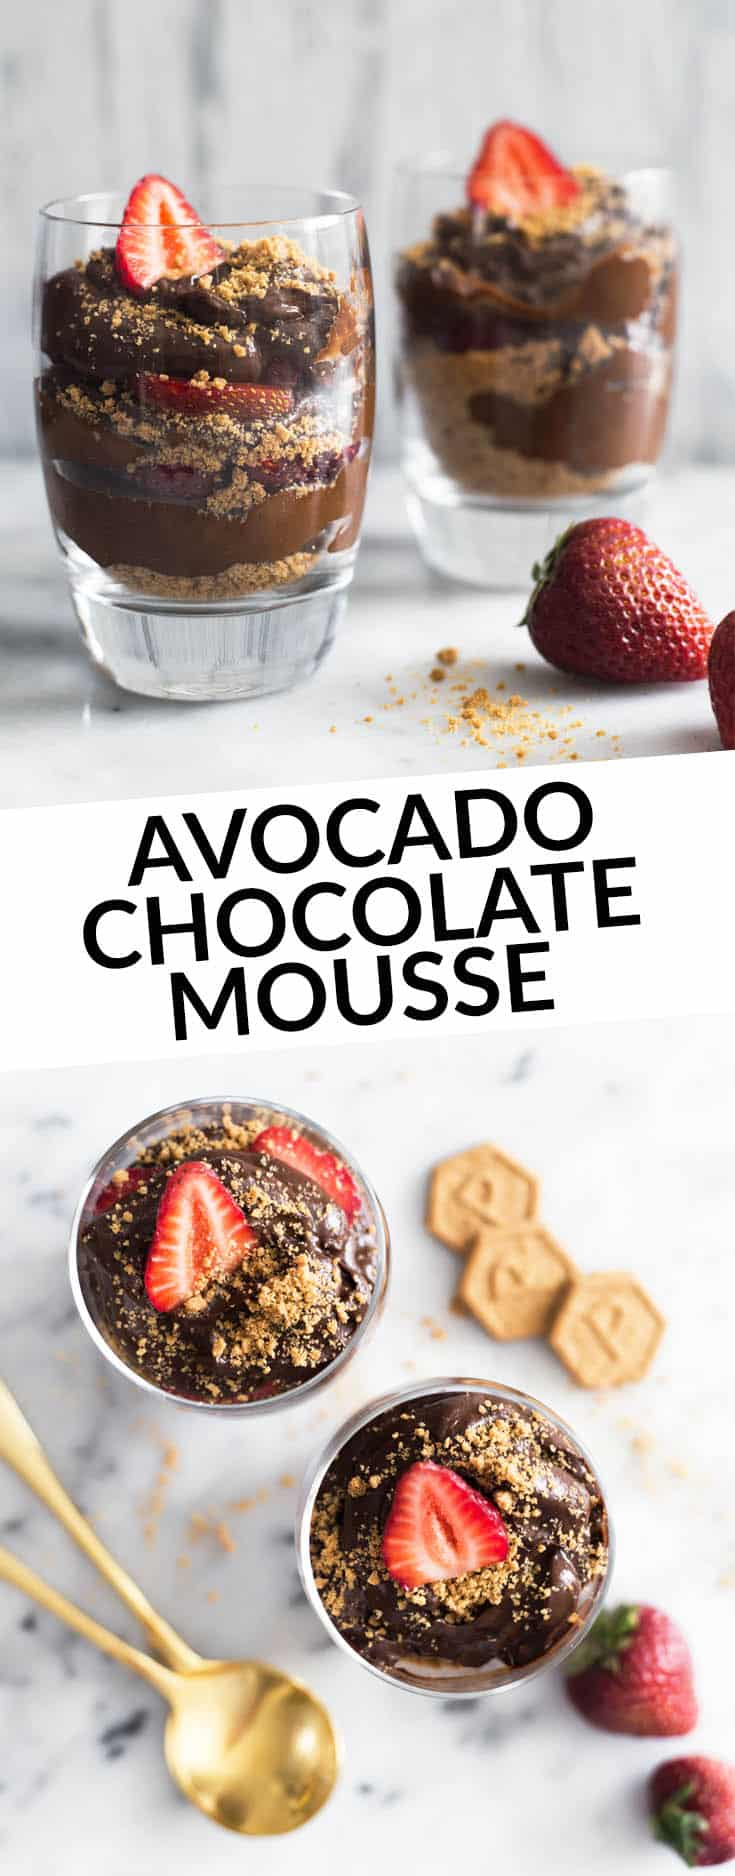 Avocado Chocolate Mousse Parfaits with Graham Cracker Crust